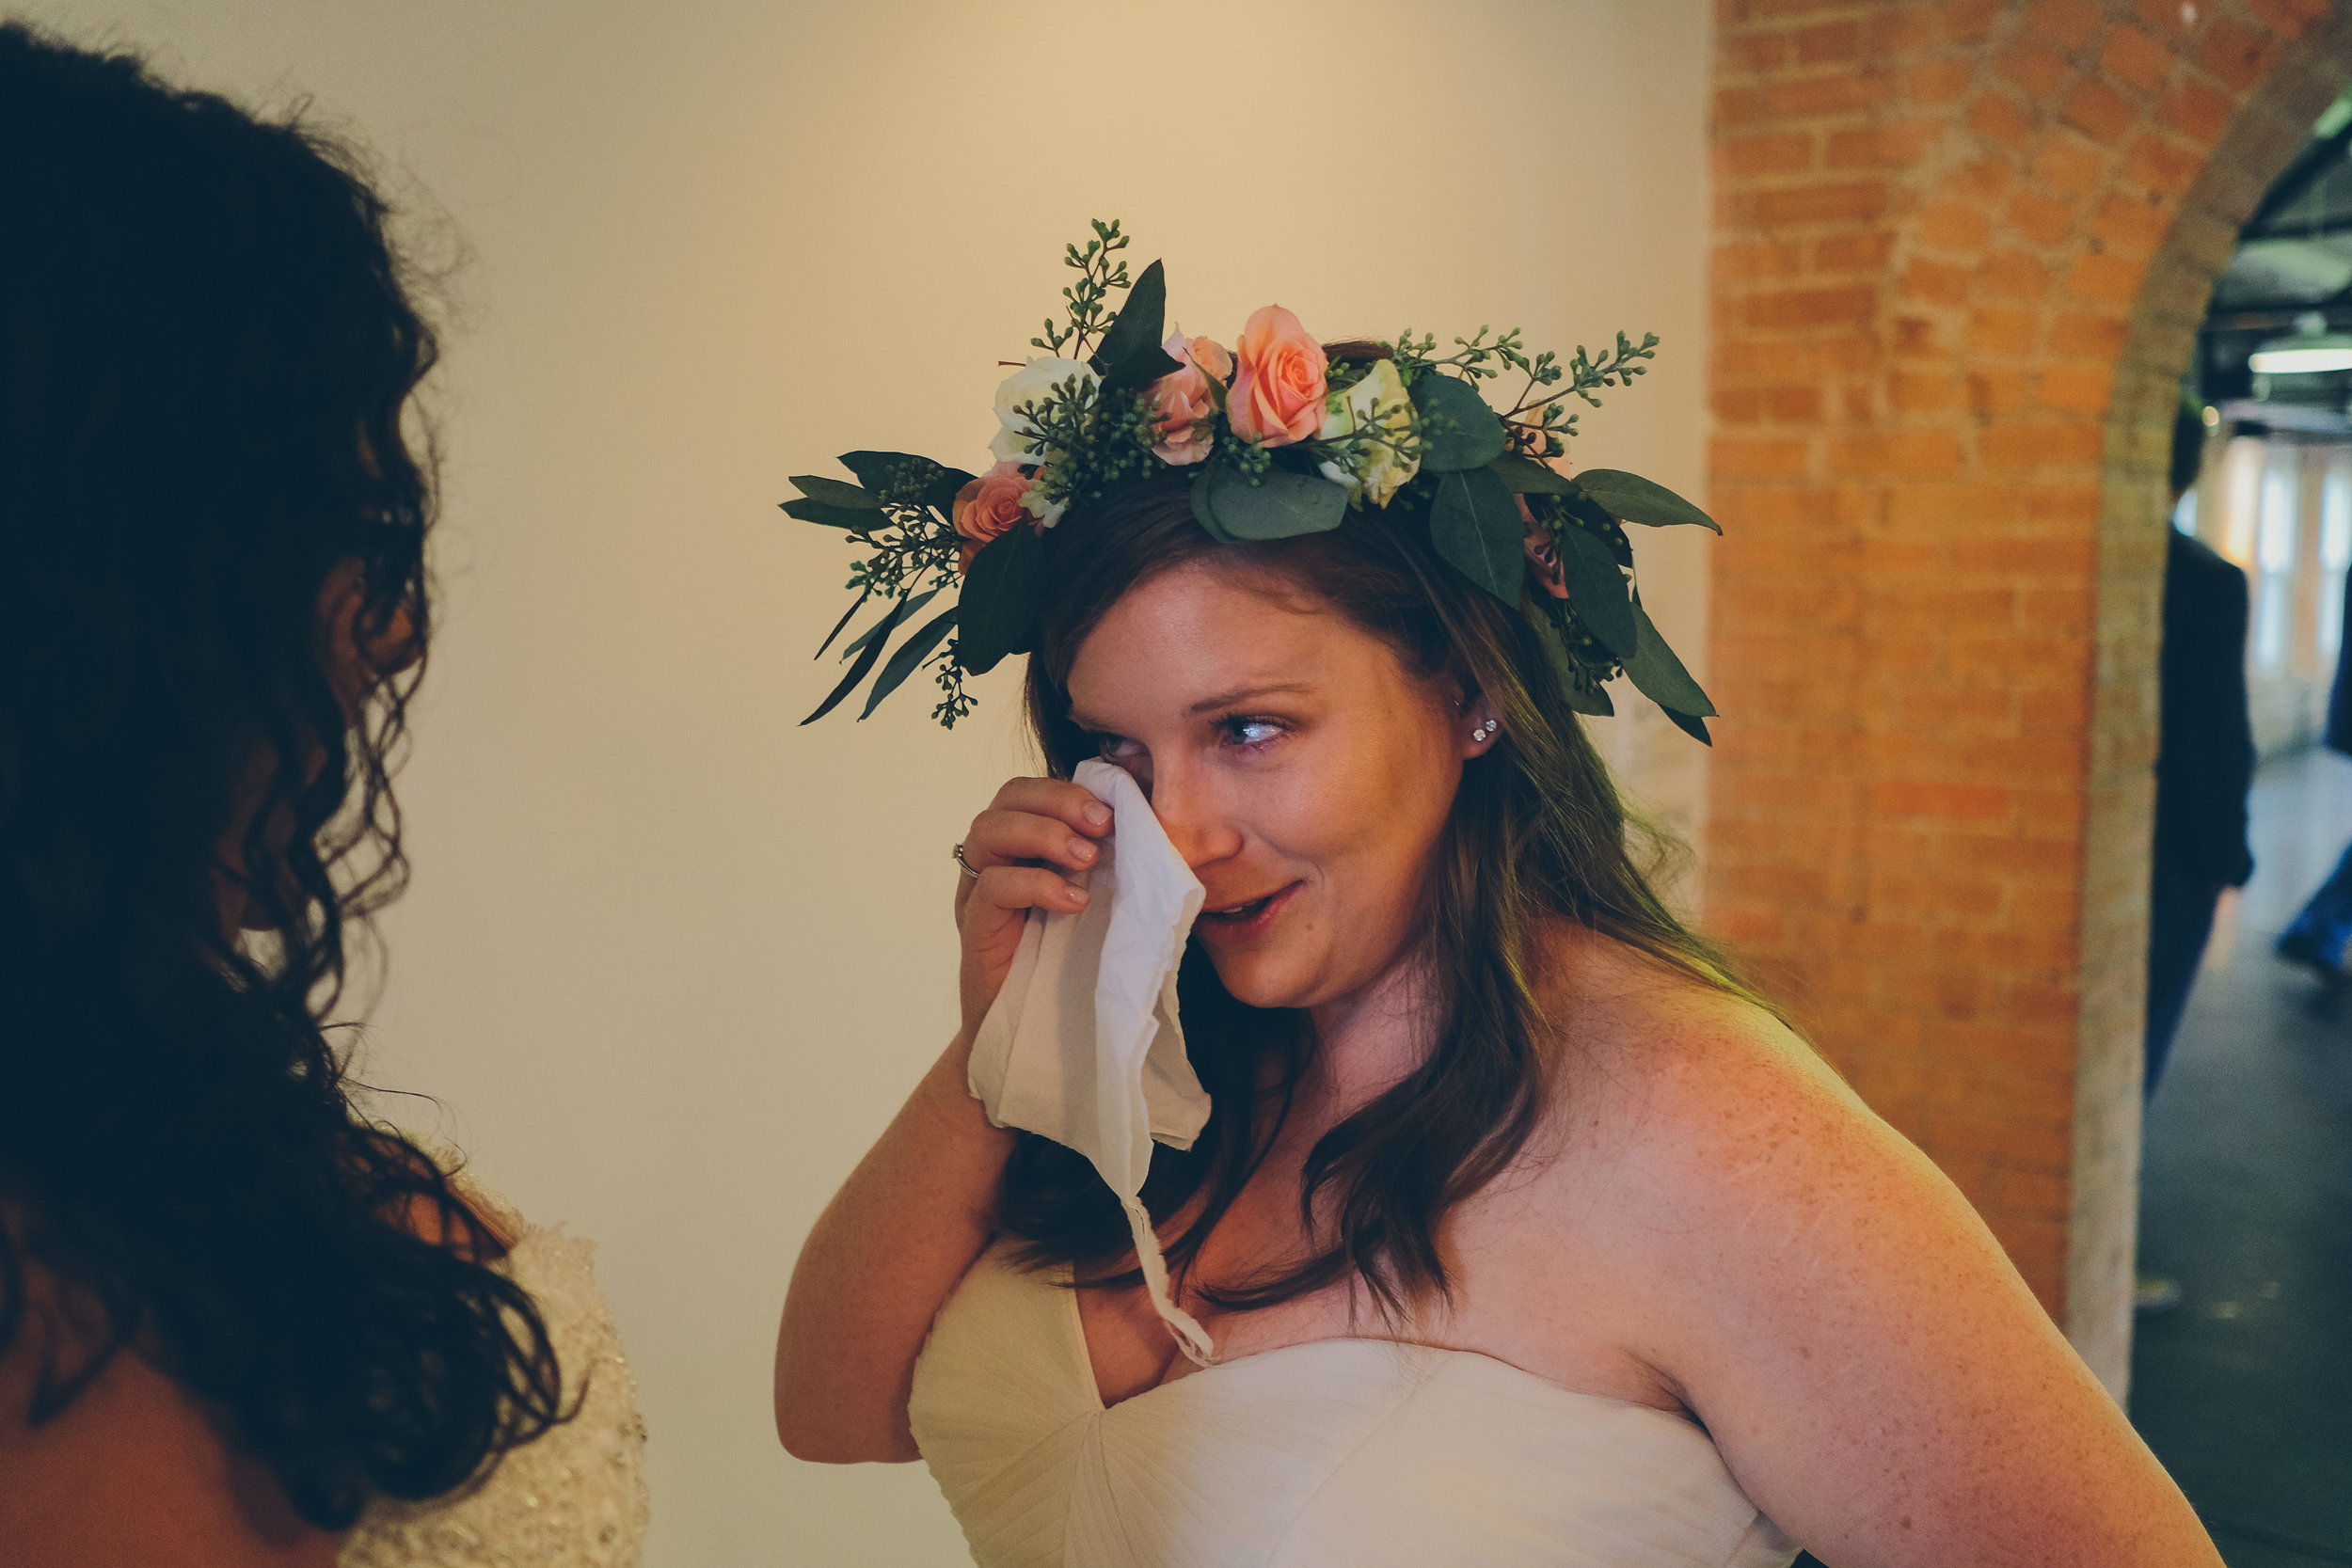 Color photo of bride wiping tears from her face.